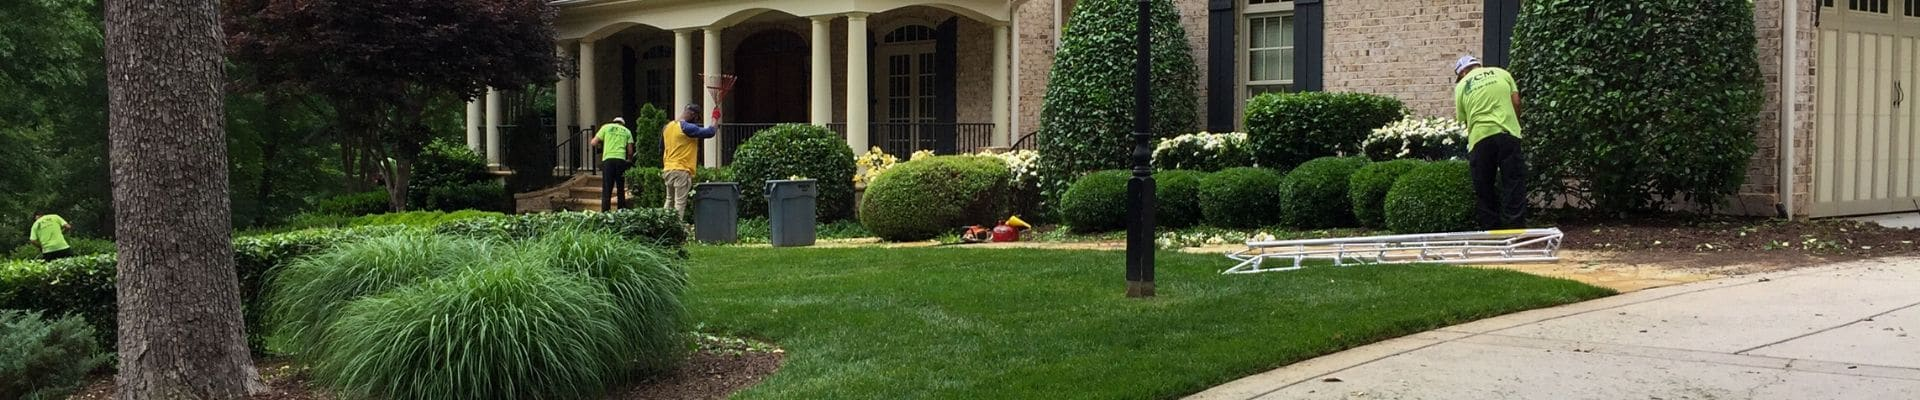 4 ECM Landscaping and Lawn Care employees working on a lawn and landscaping in North Raleigh, NC.